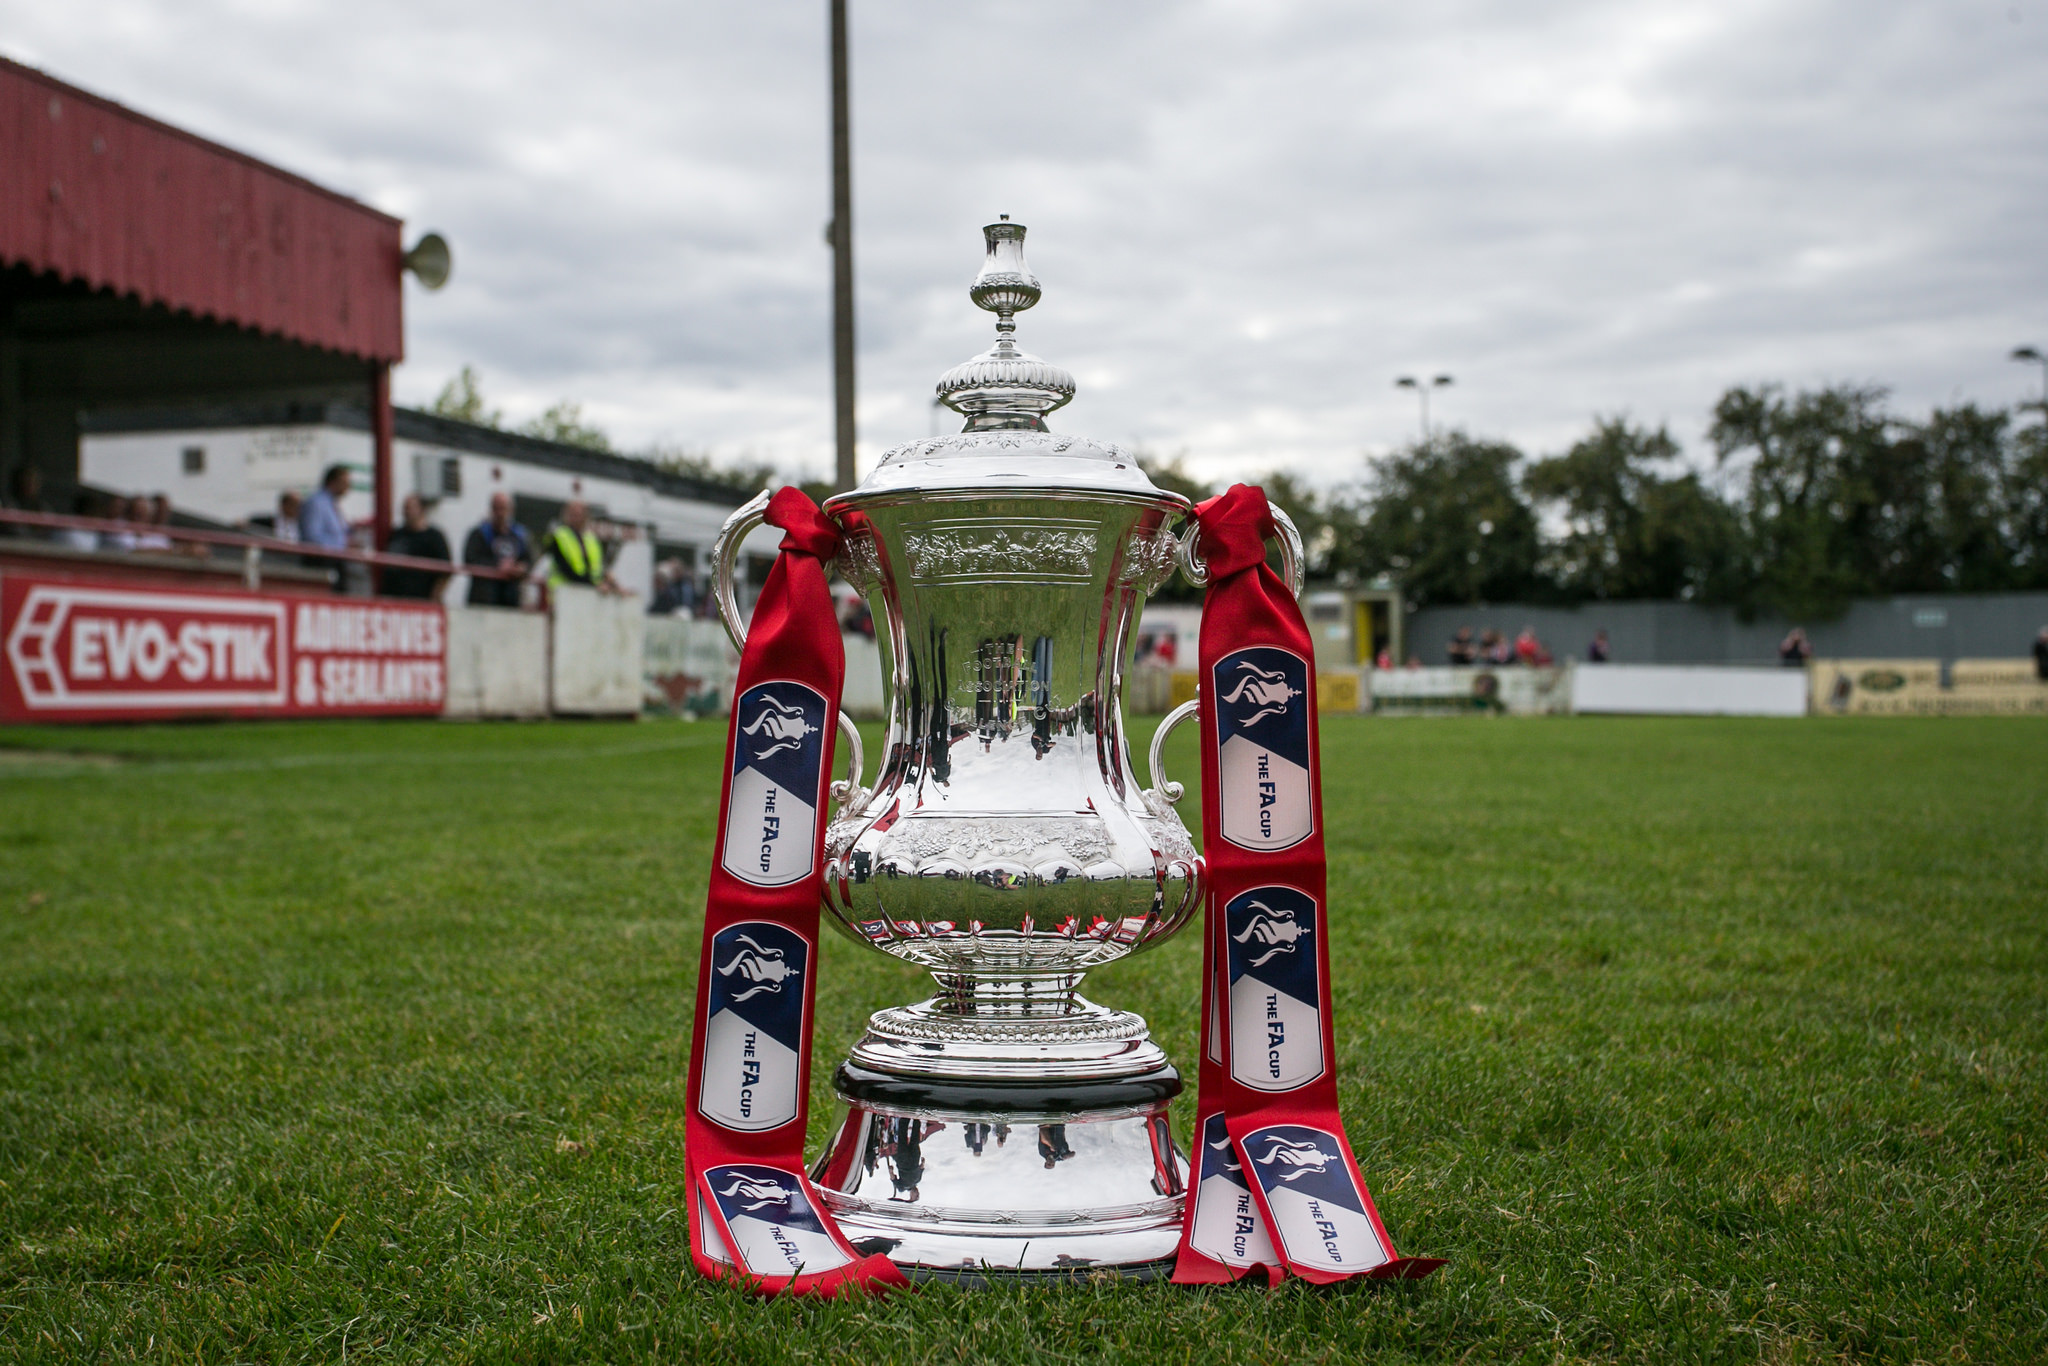 Home draws for Bury Town and AFC Sudbury in FA Cup